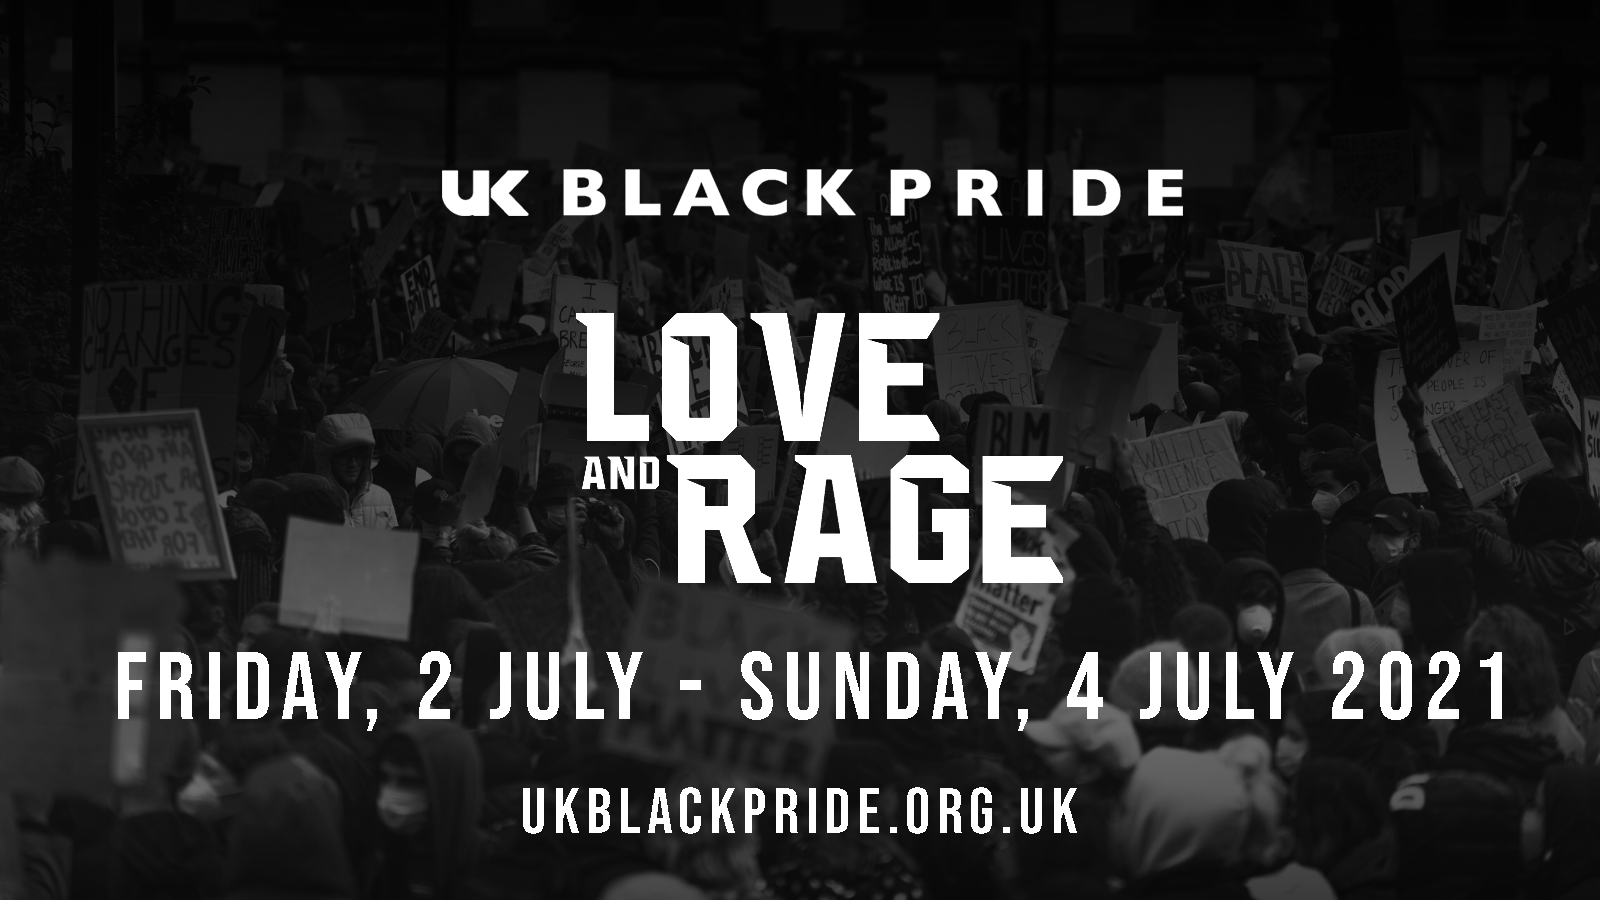 White text on top of a black and white image of a march. Text reads: UK Black Pride. Love and race. Friday 2 July - Sunday 4 July. UKBlackPride.org.uk